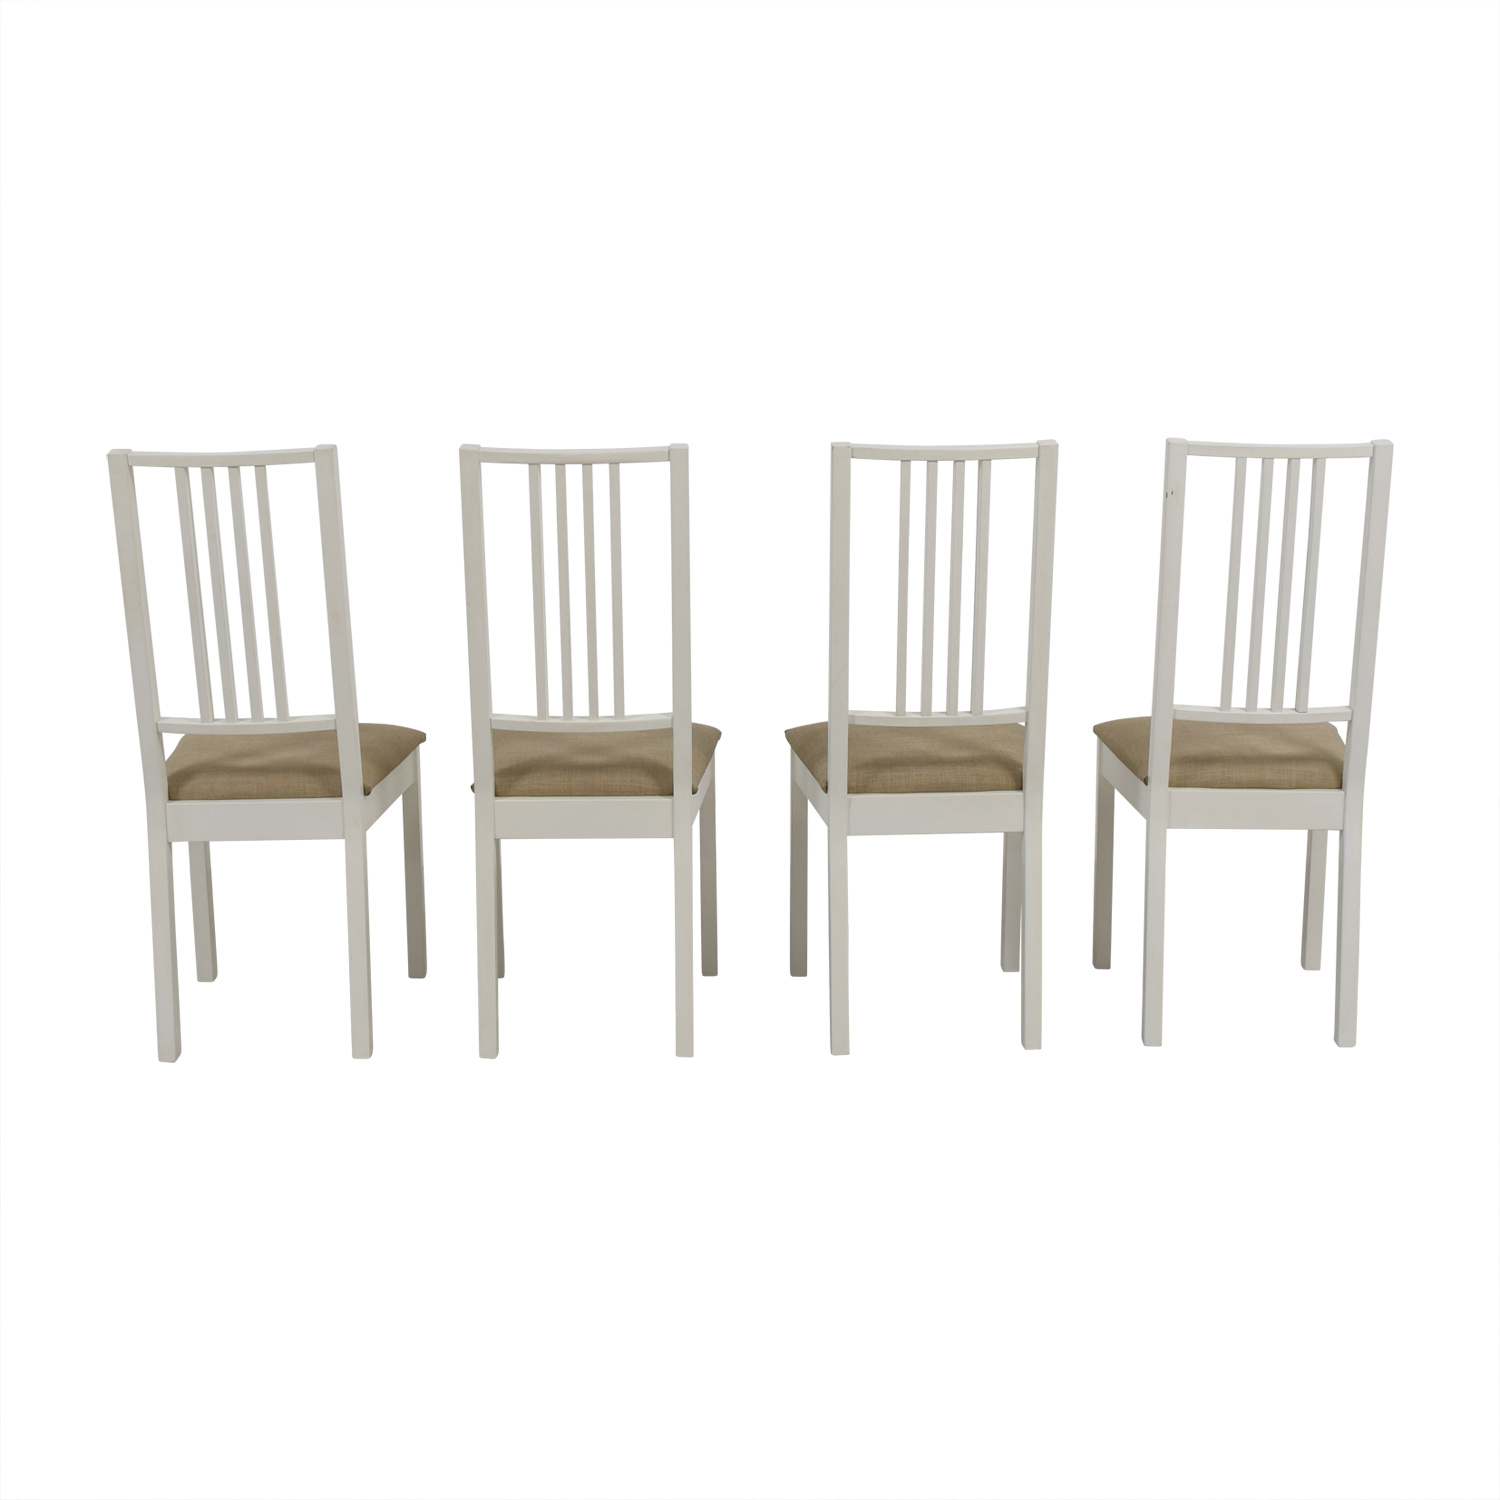 Dining Chairs Ikea 82 Off Ikea Ikea White With Tan Upholstered Dining Chairs Chairs